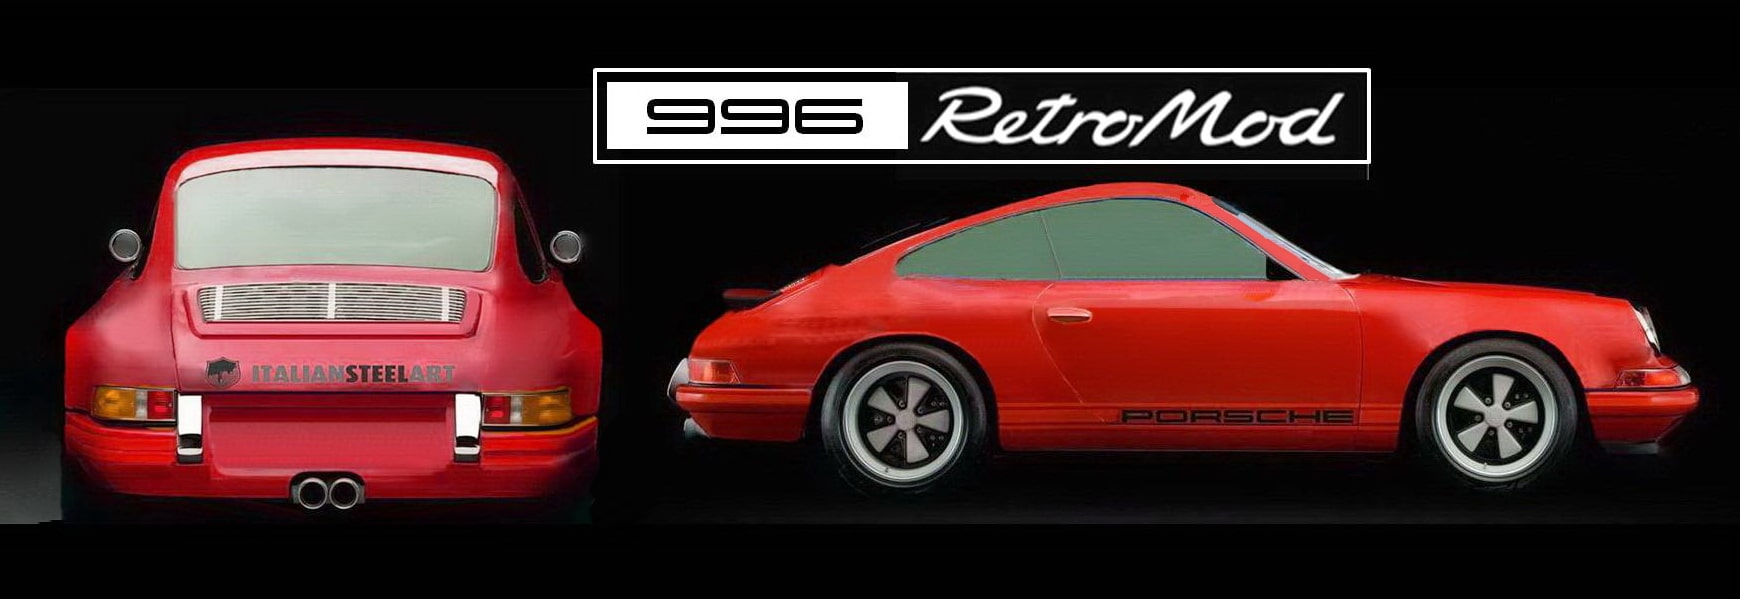 996 retromod side right BANNER YP